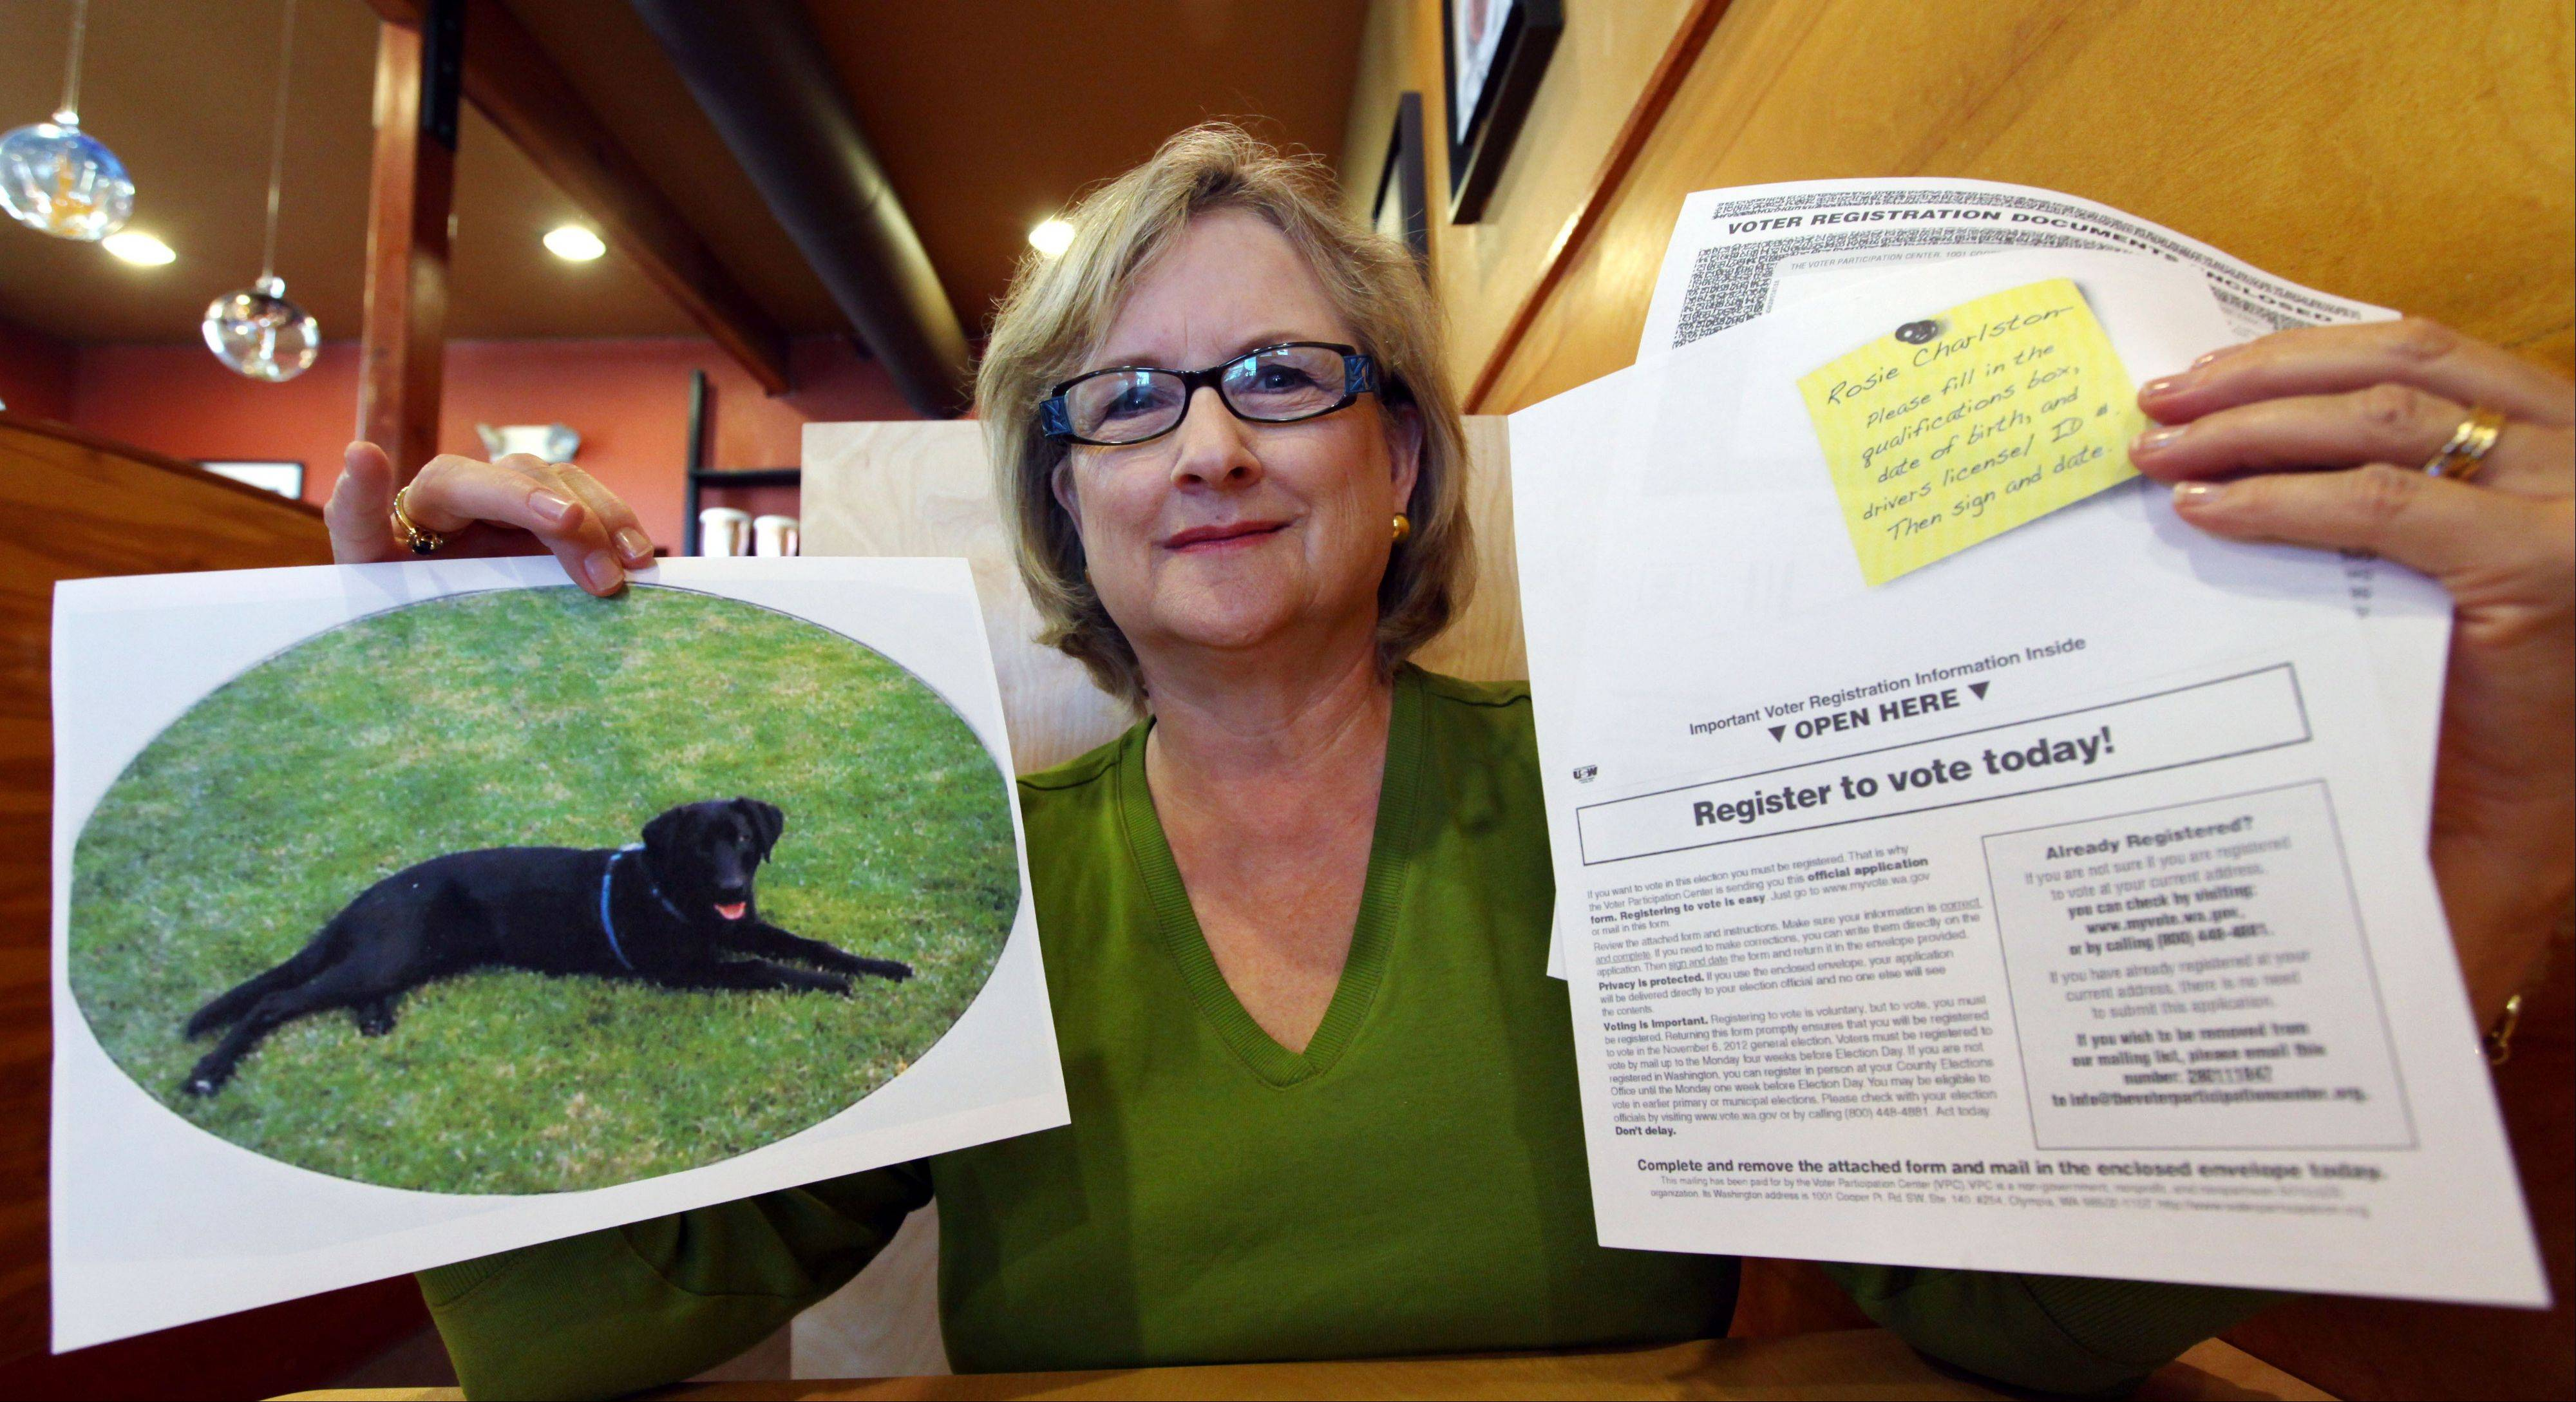 Brenda Charlston holds a photo of her long-deceased dog, Rosie, and a voter registration form for �Rosie Charlston� that arrived in the mail for the canine last month, in Seattle. Rosie was a black lab who died in 1998. A left-leaning group called the Voter Participation Center has touted the distribution of some 5 million registration forms in recent weeks, targeting Democratic voting blocs such as unmarried women, blacks, Latinos and young adults. But residents and election administrators around the country have also reported a series of bizarre and questionable mailings addressed to animals, dead people and people already registered to vote.